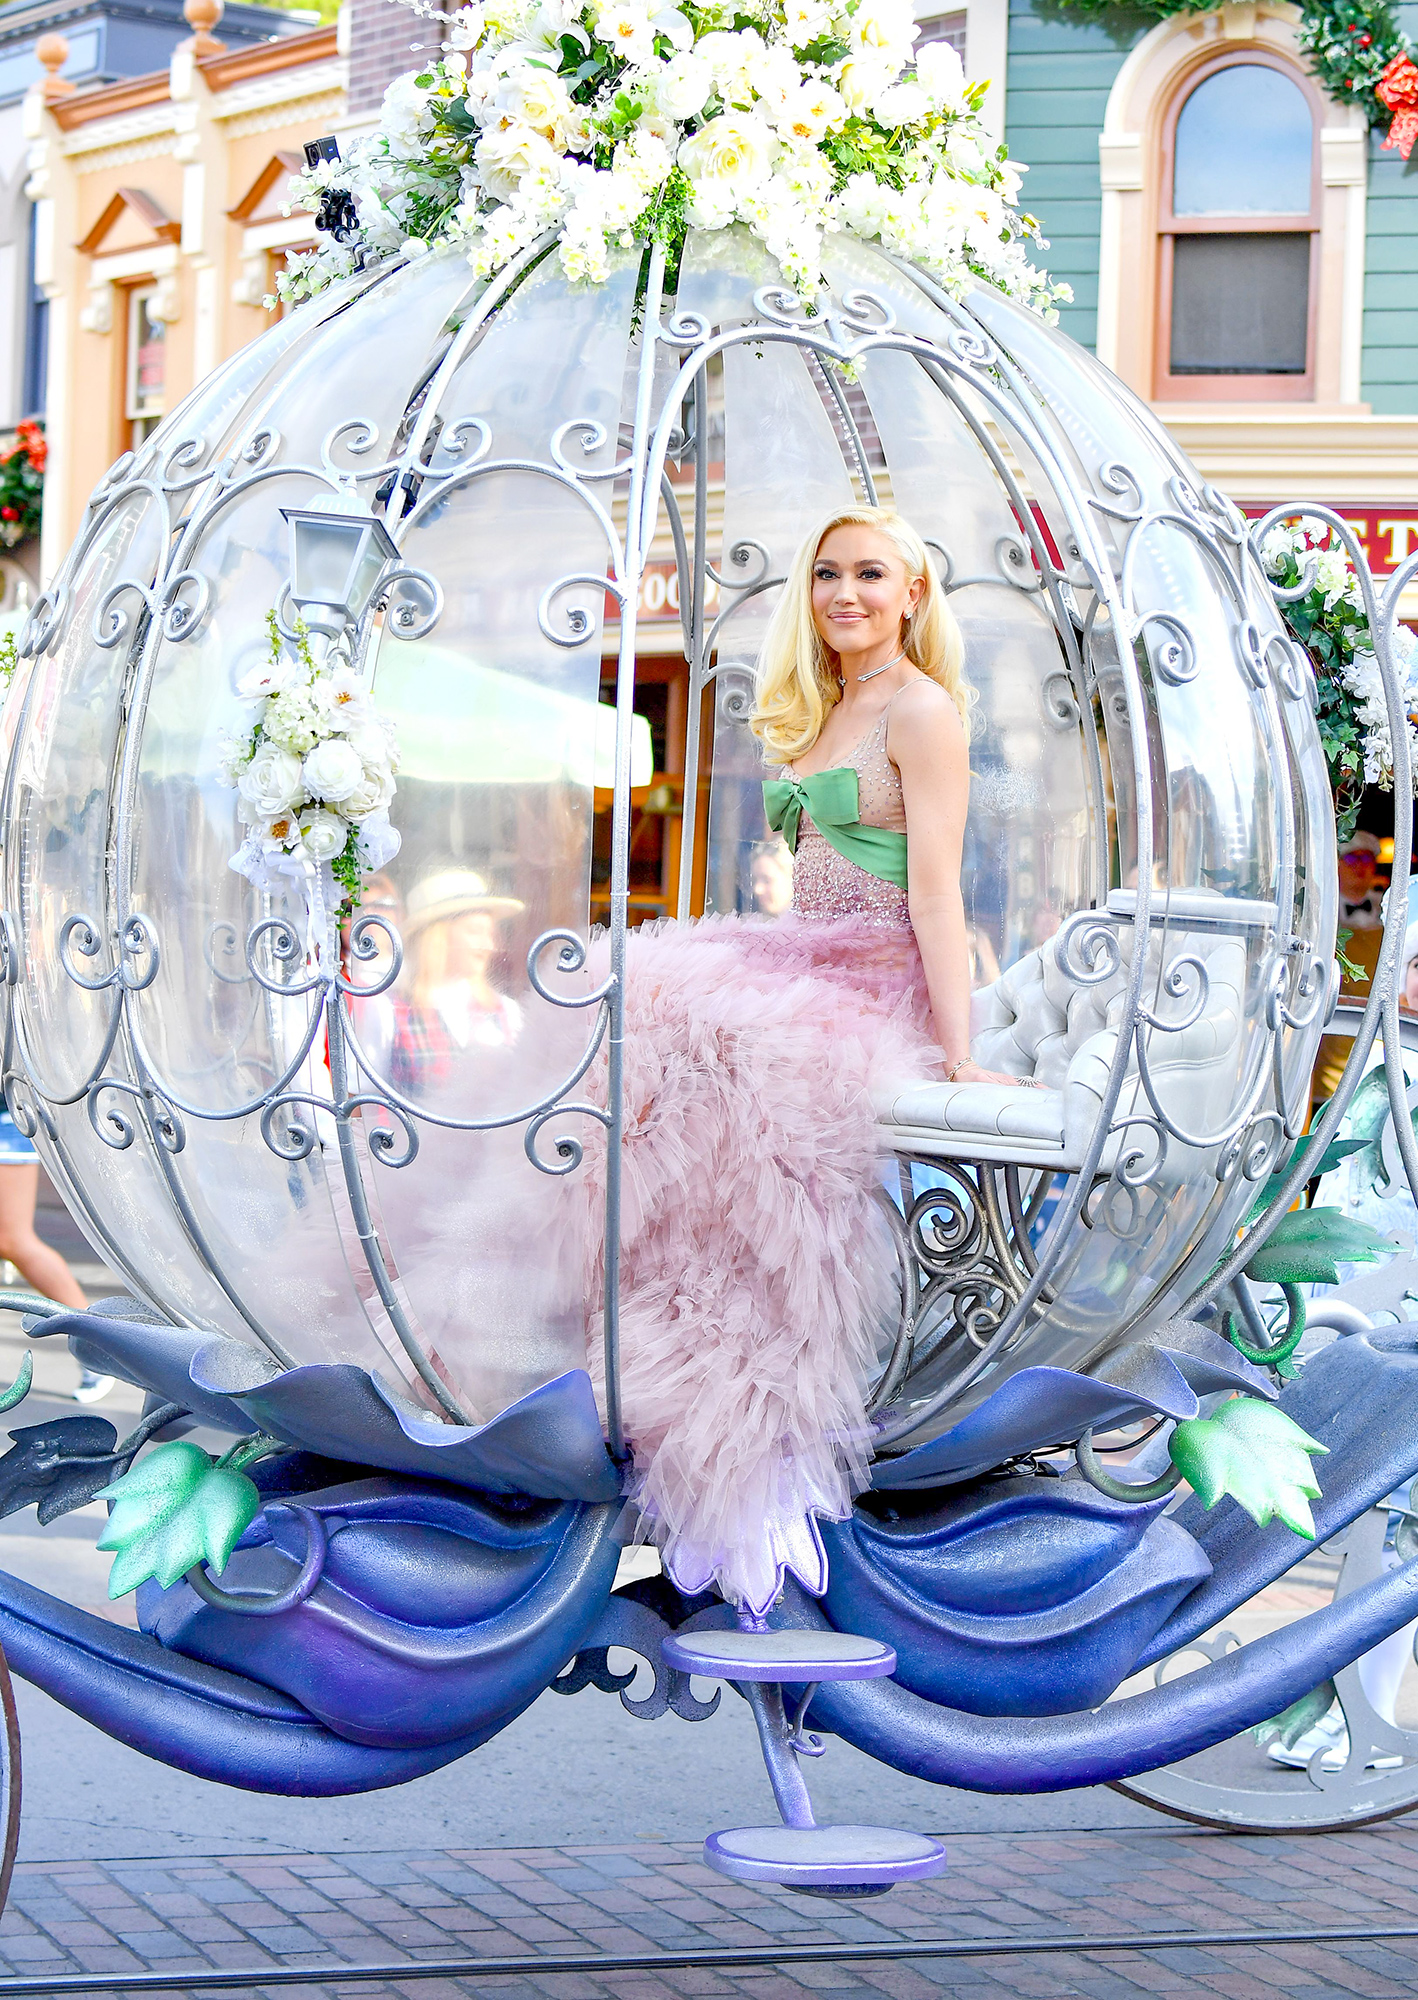 EXCLUSIVE: Gwen Stefani arrives to her performance at Disneyland in a princess horse drawn carriage wearing a princess dress